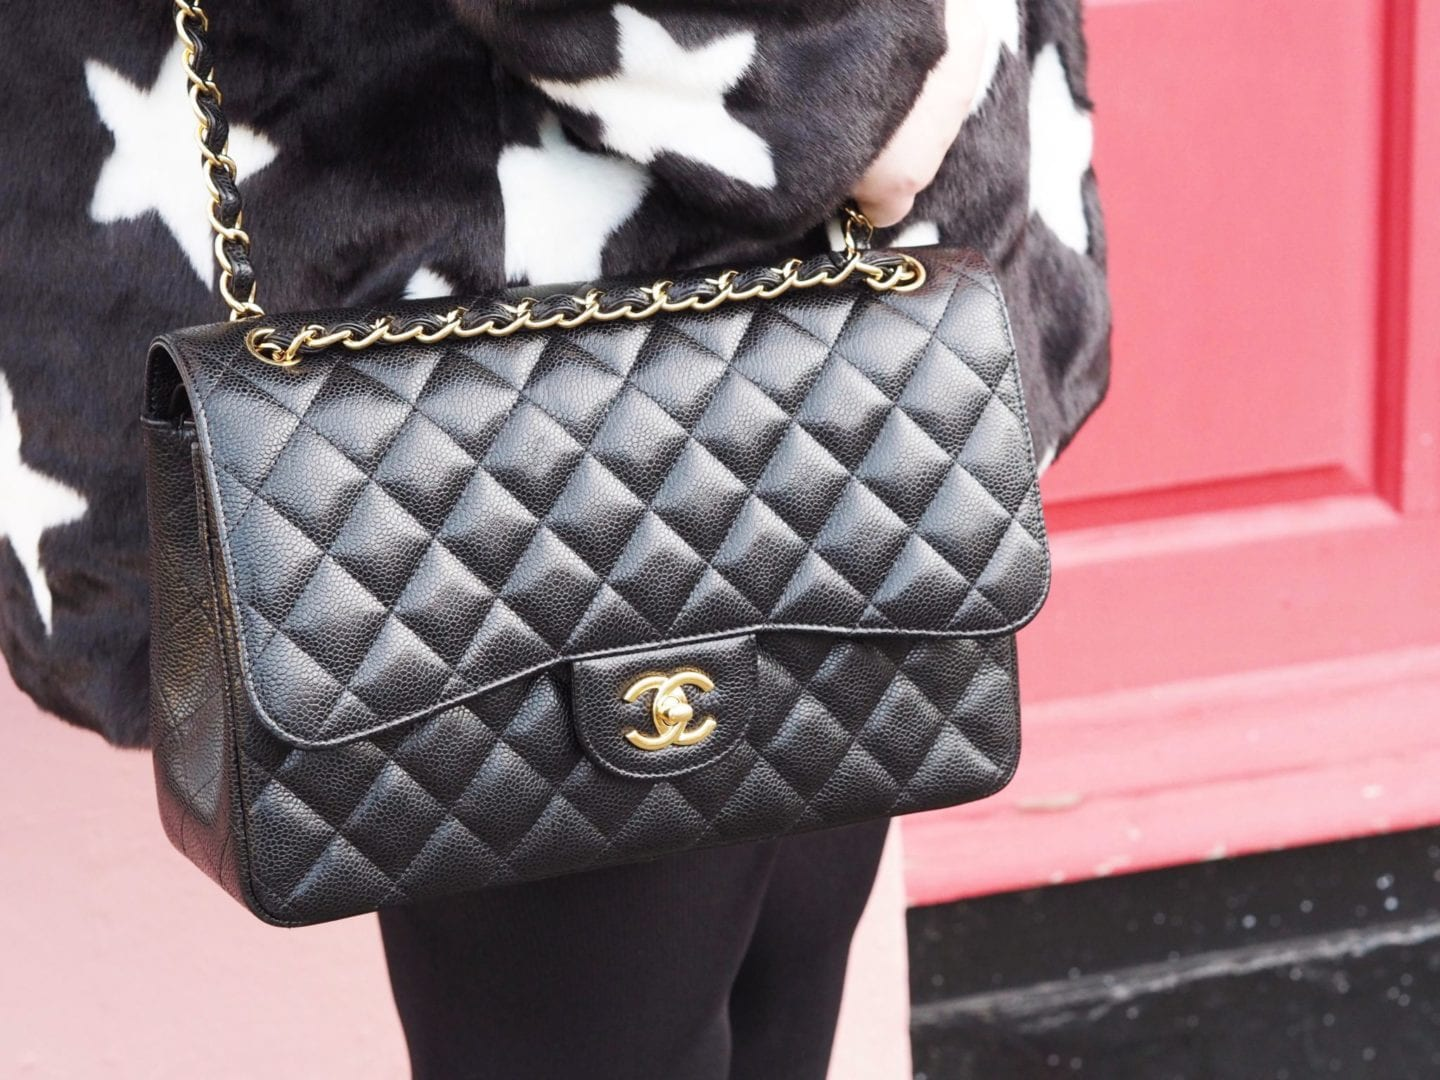 chanel-handbag-classic-flap-black-jumbo-size-caviar-leather-gold-hardwear